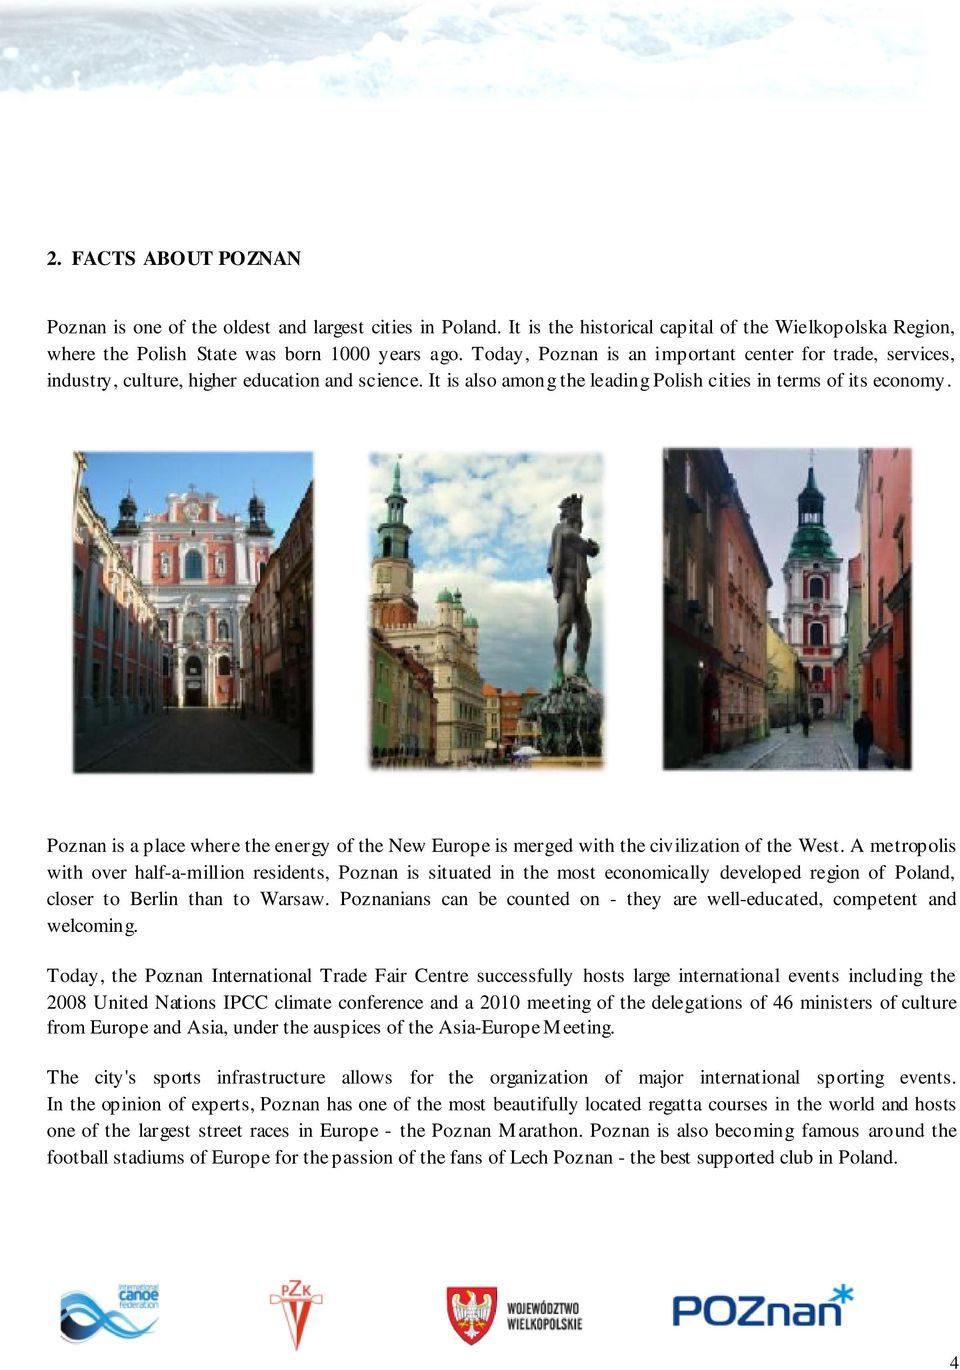 Poznan is a place where the energy of the New Europe is merged with the civilization of the West.